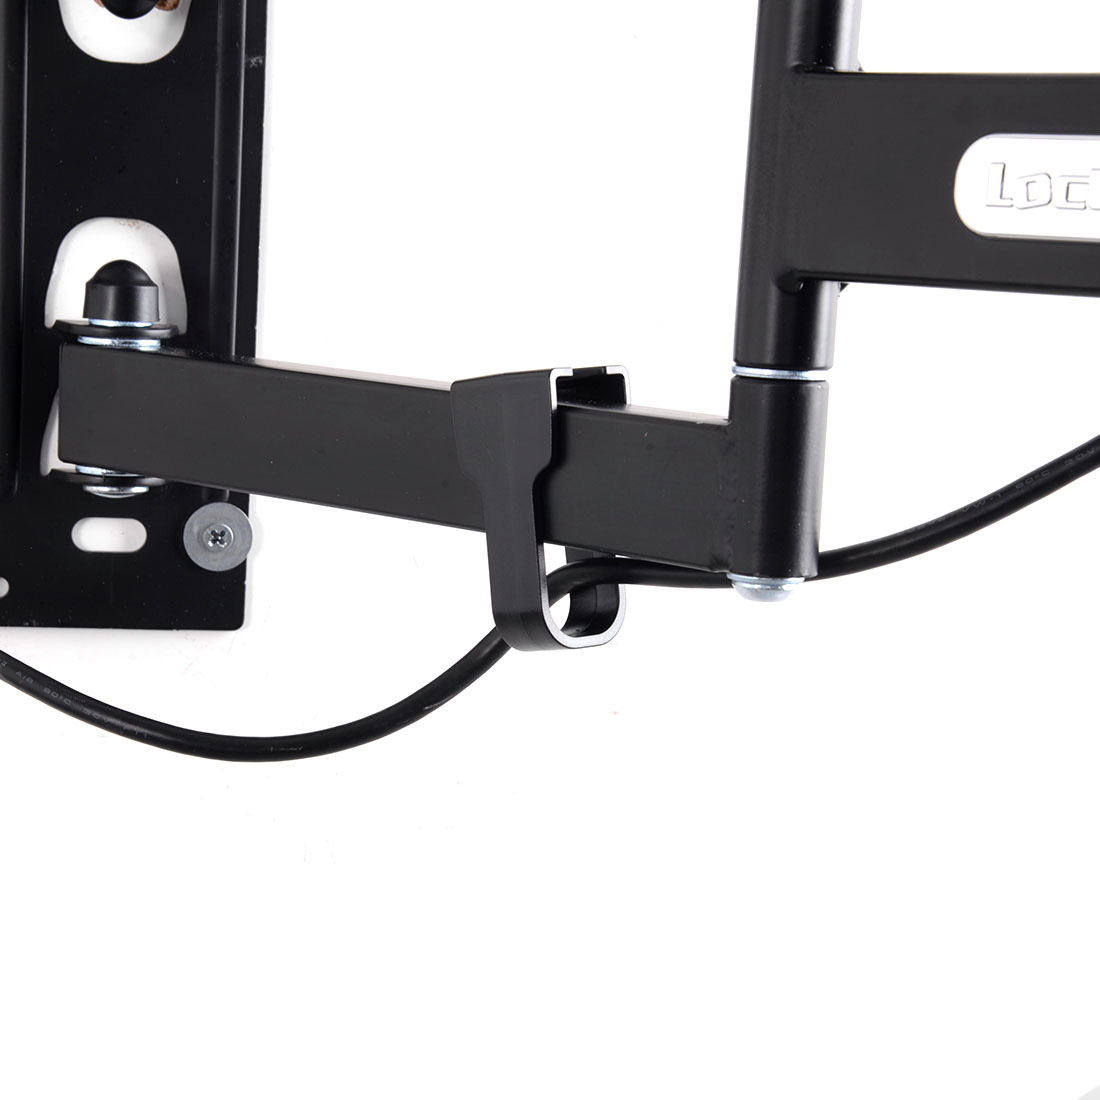 Loctek L2 Full Motion Articulating Wall Mount Bracket for 14-42 Inches TV, Black